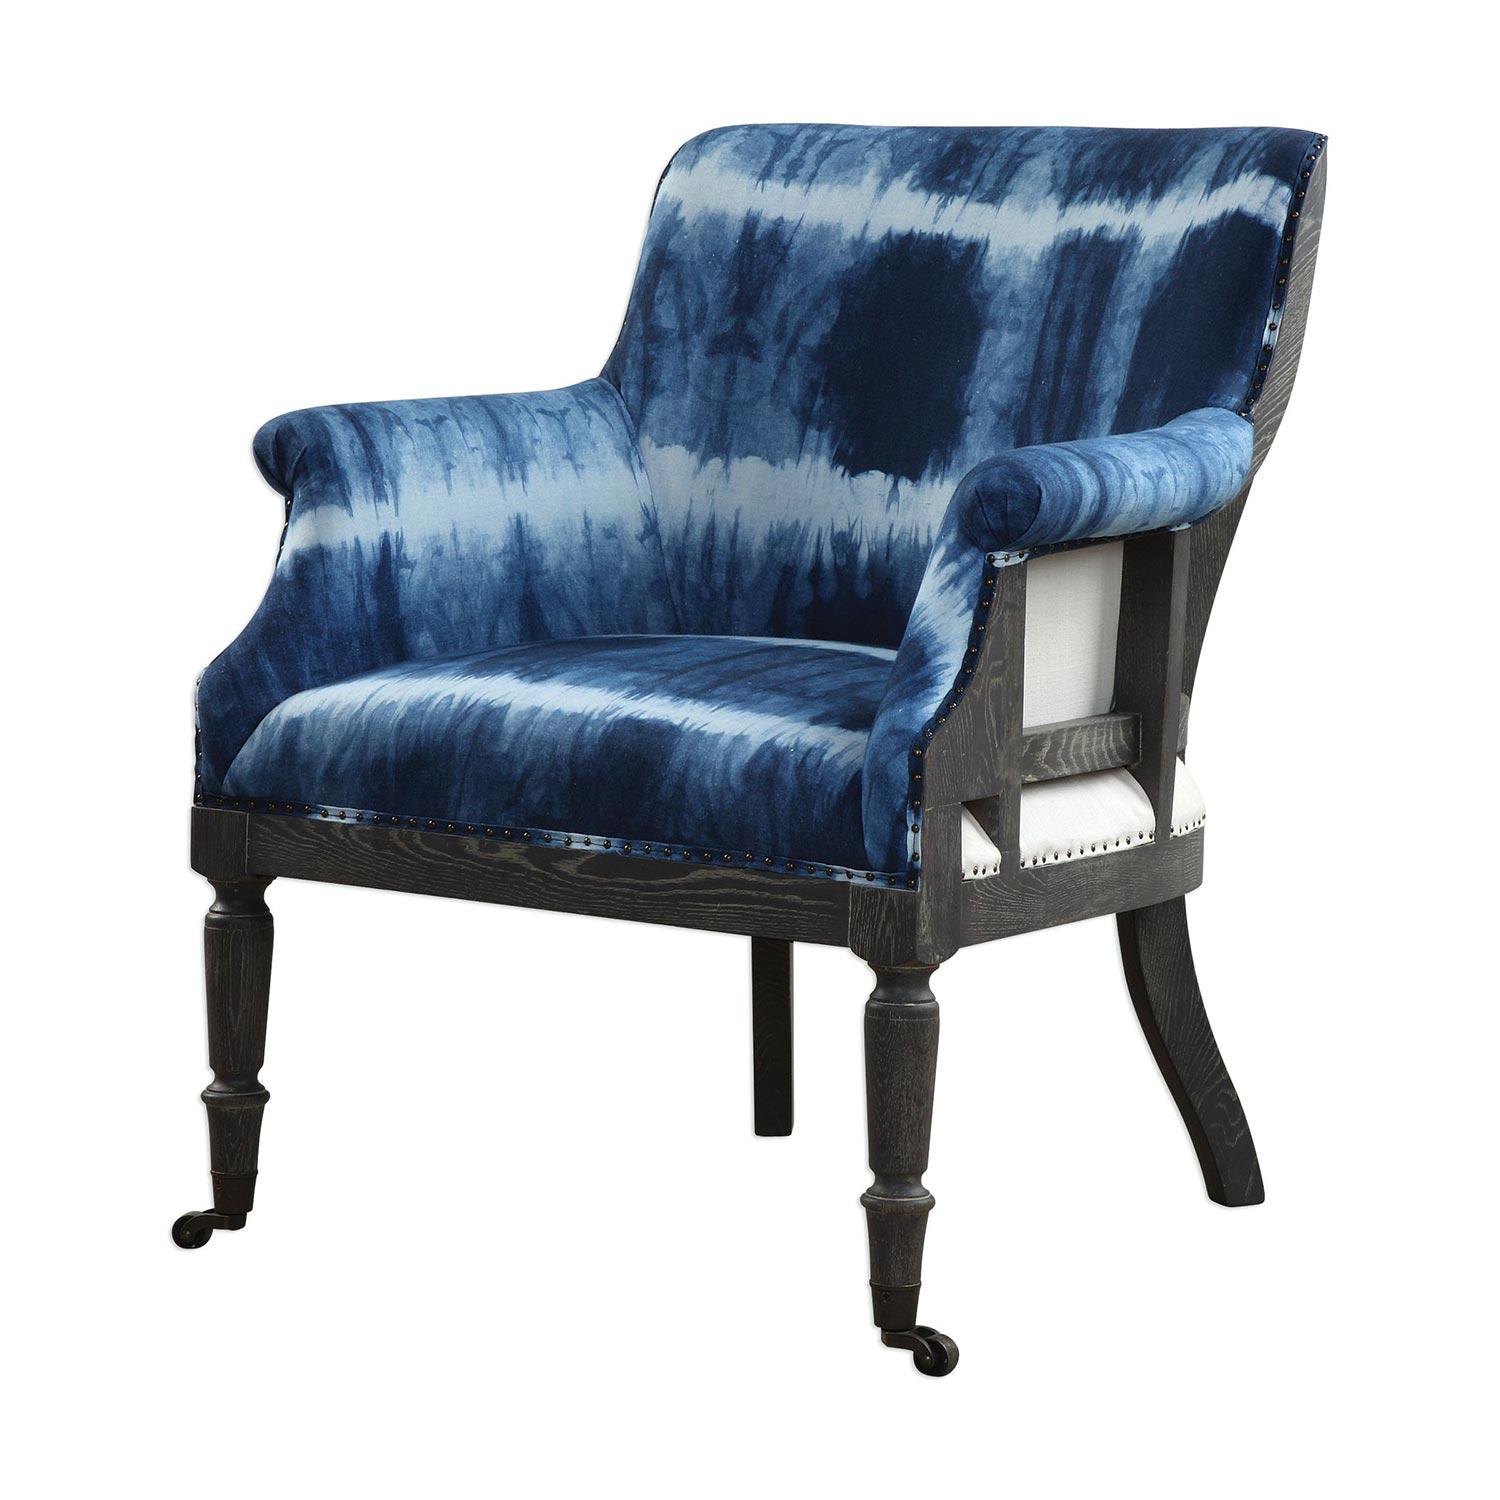 Uttermost Royal Cobalt Accent Chair - Blue